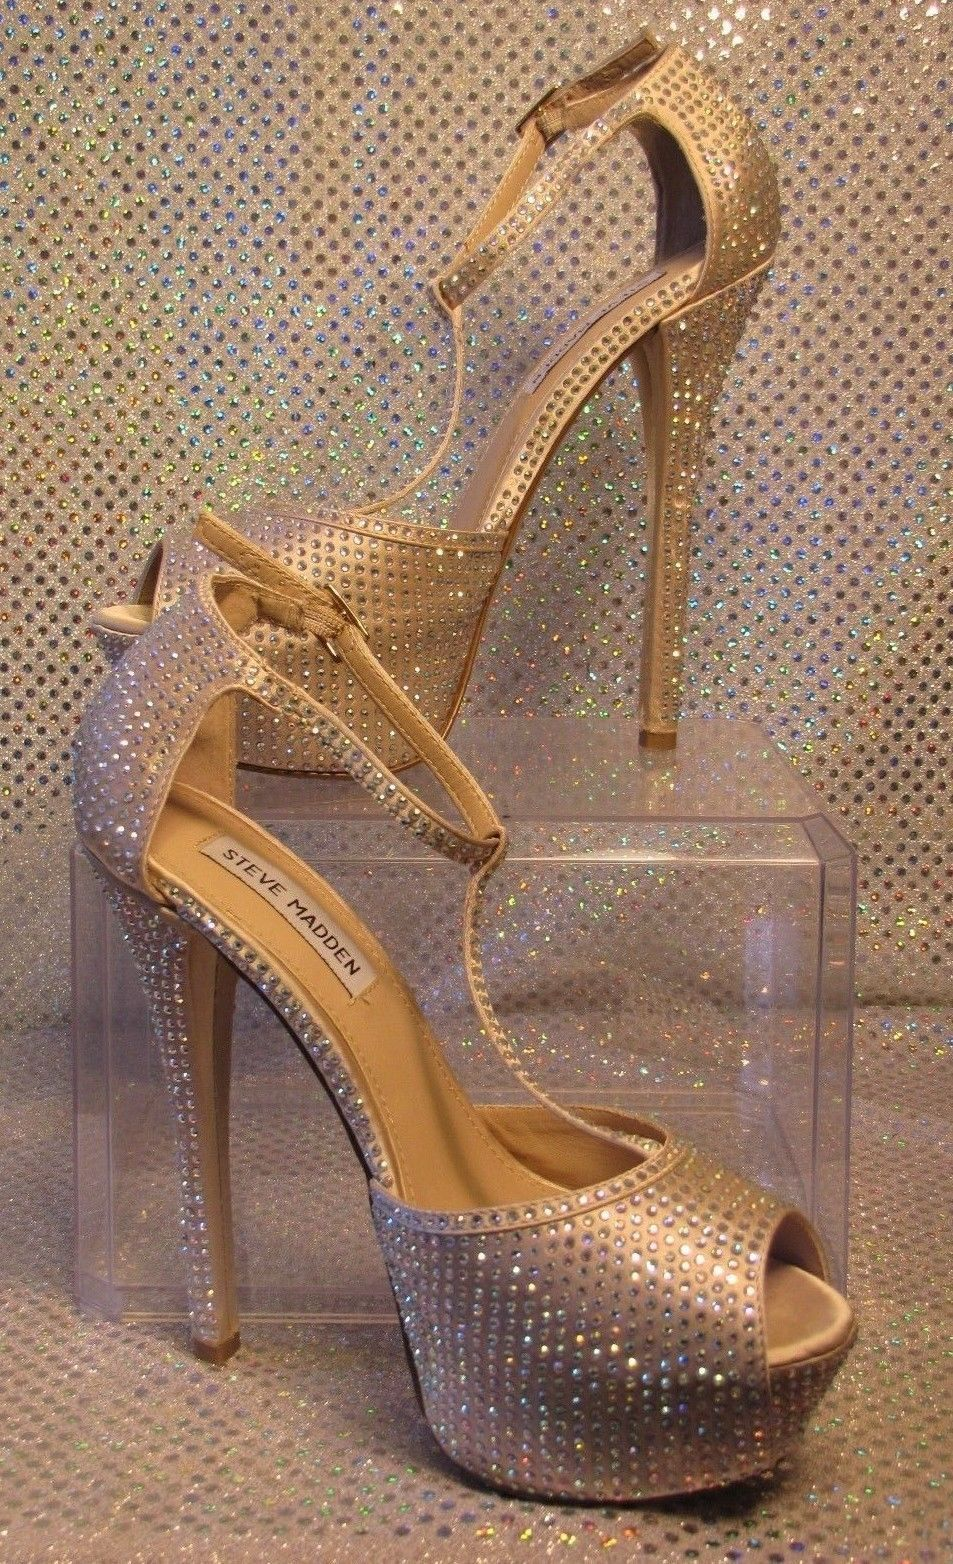 f90e3176a91 STEVE MADDEN RHINESTONE CRYSTAL TALL STILETTO PLATFORM FORMAL PUMPS SZ 7.5M